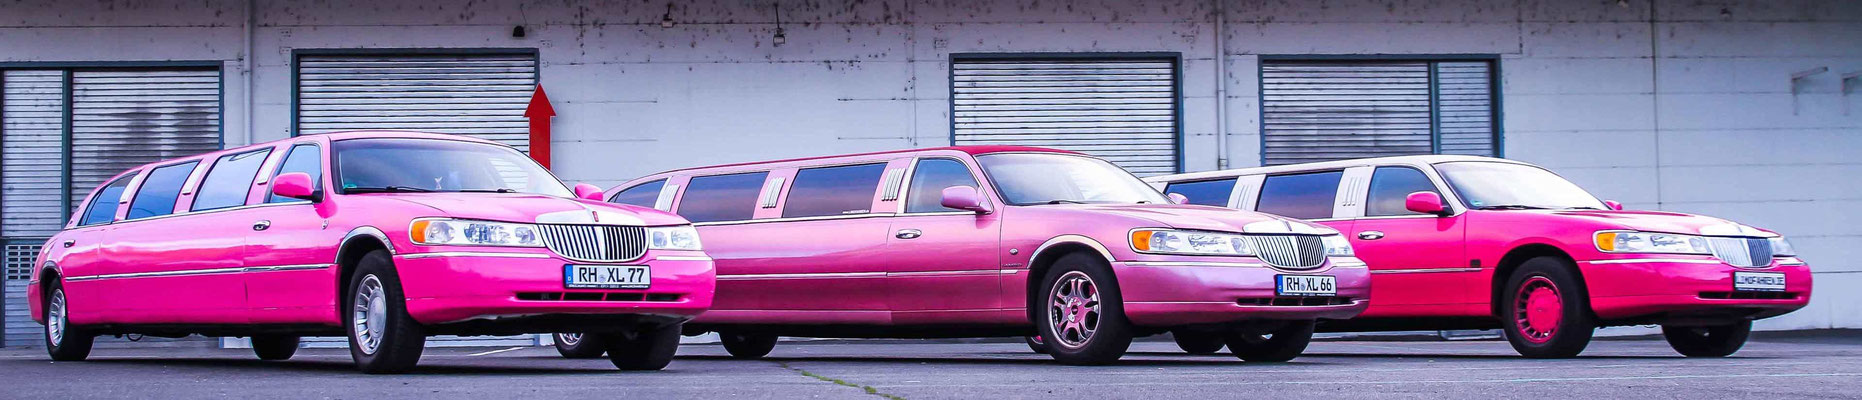 Strech-Limo Pink